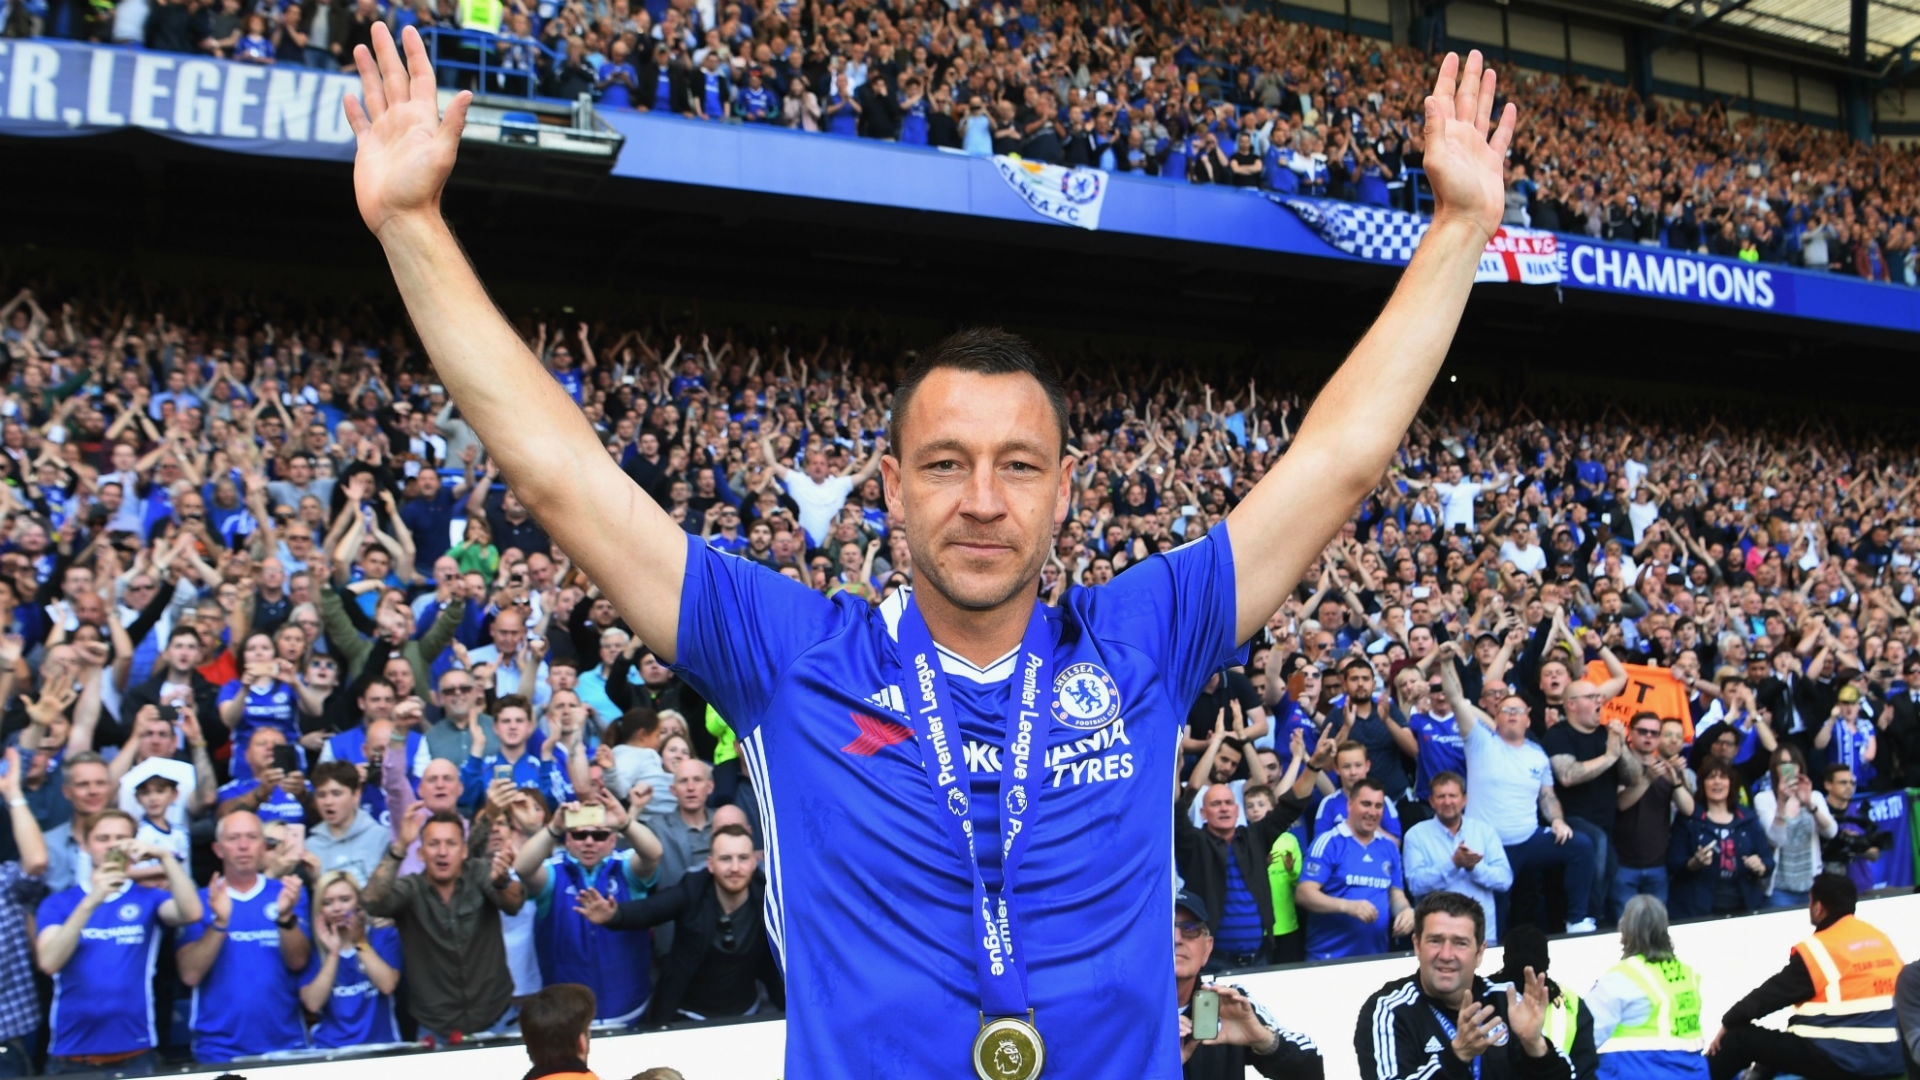 Terry is expected to continue his playing career for at least one more season